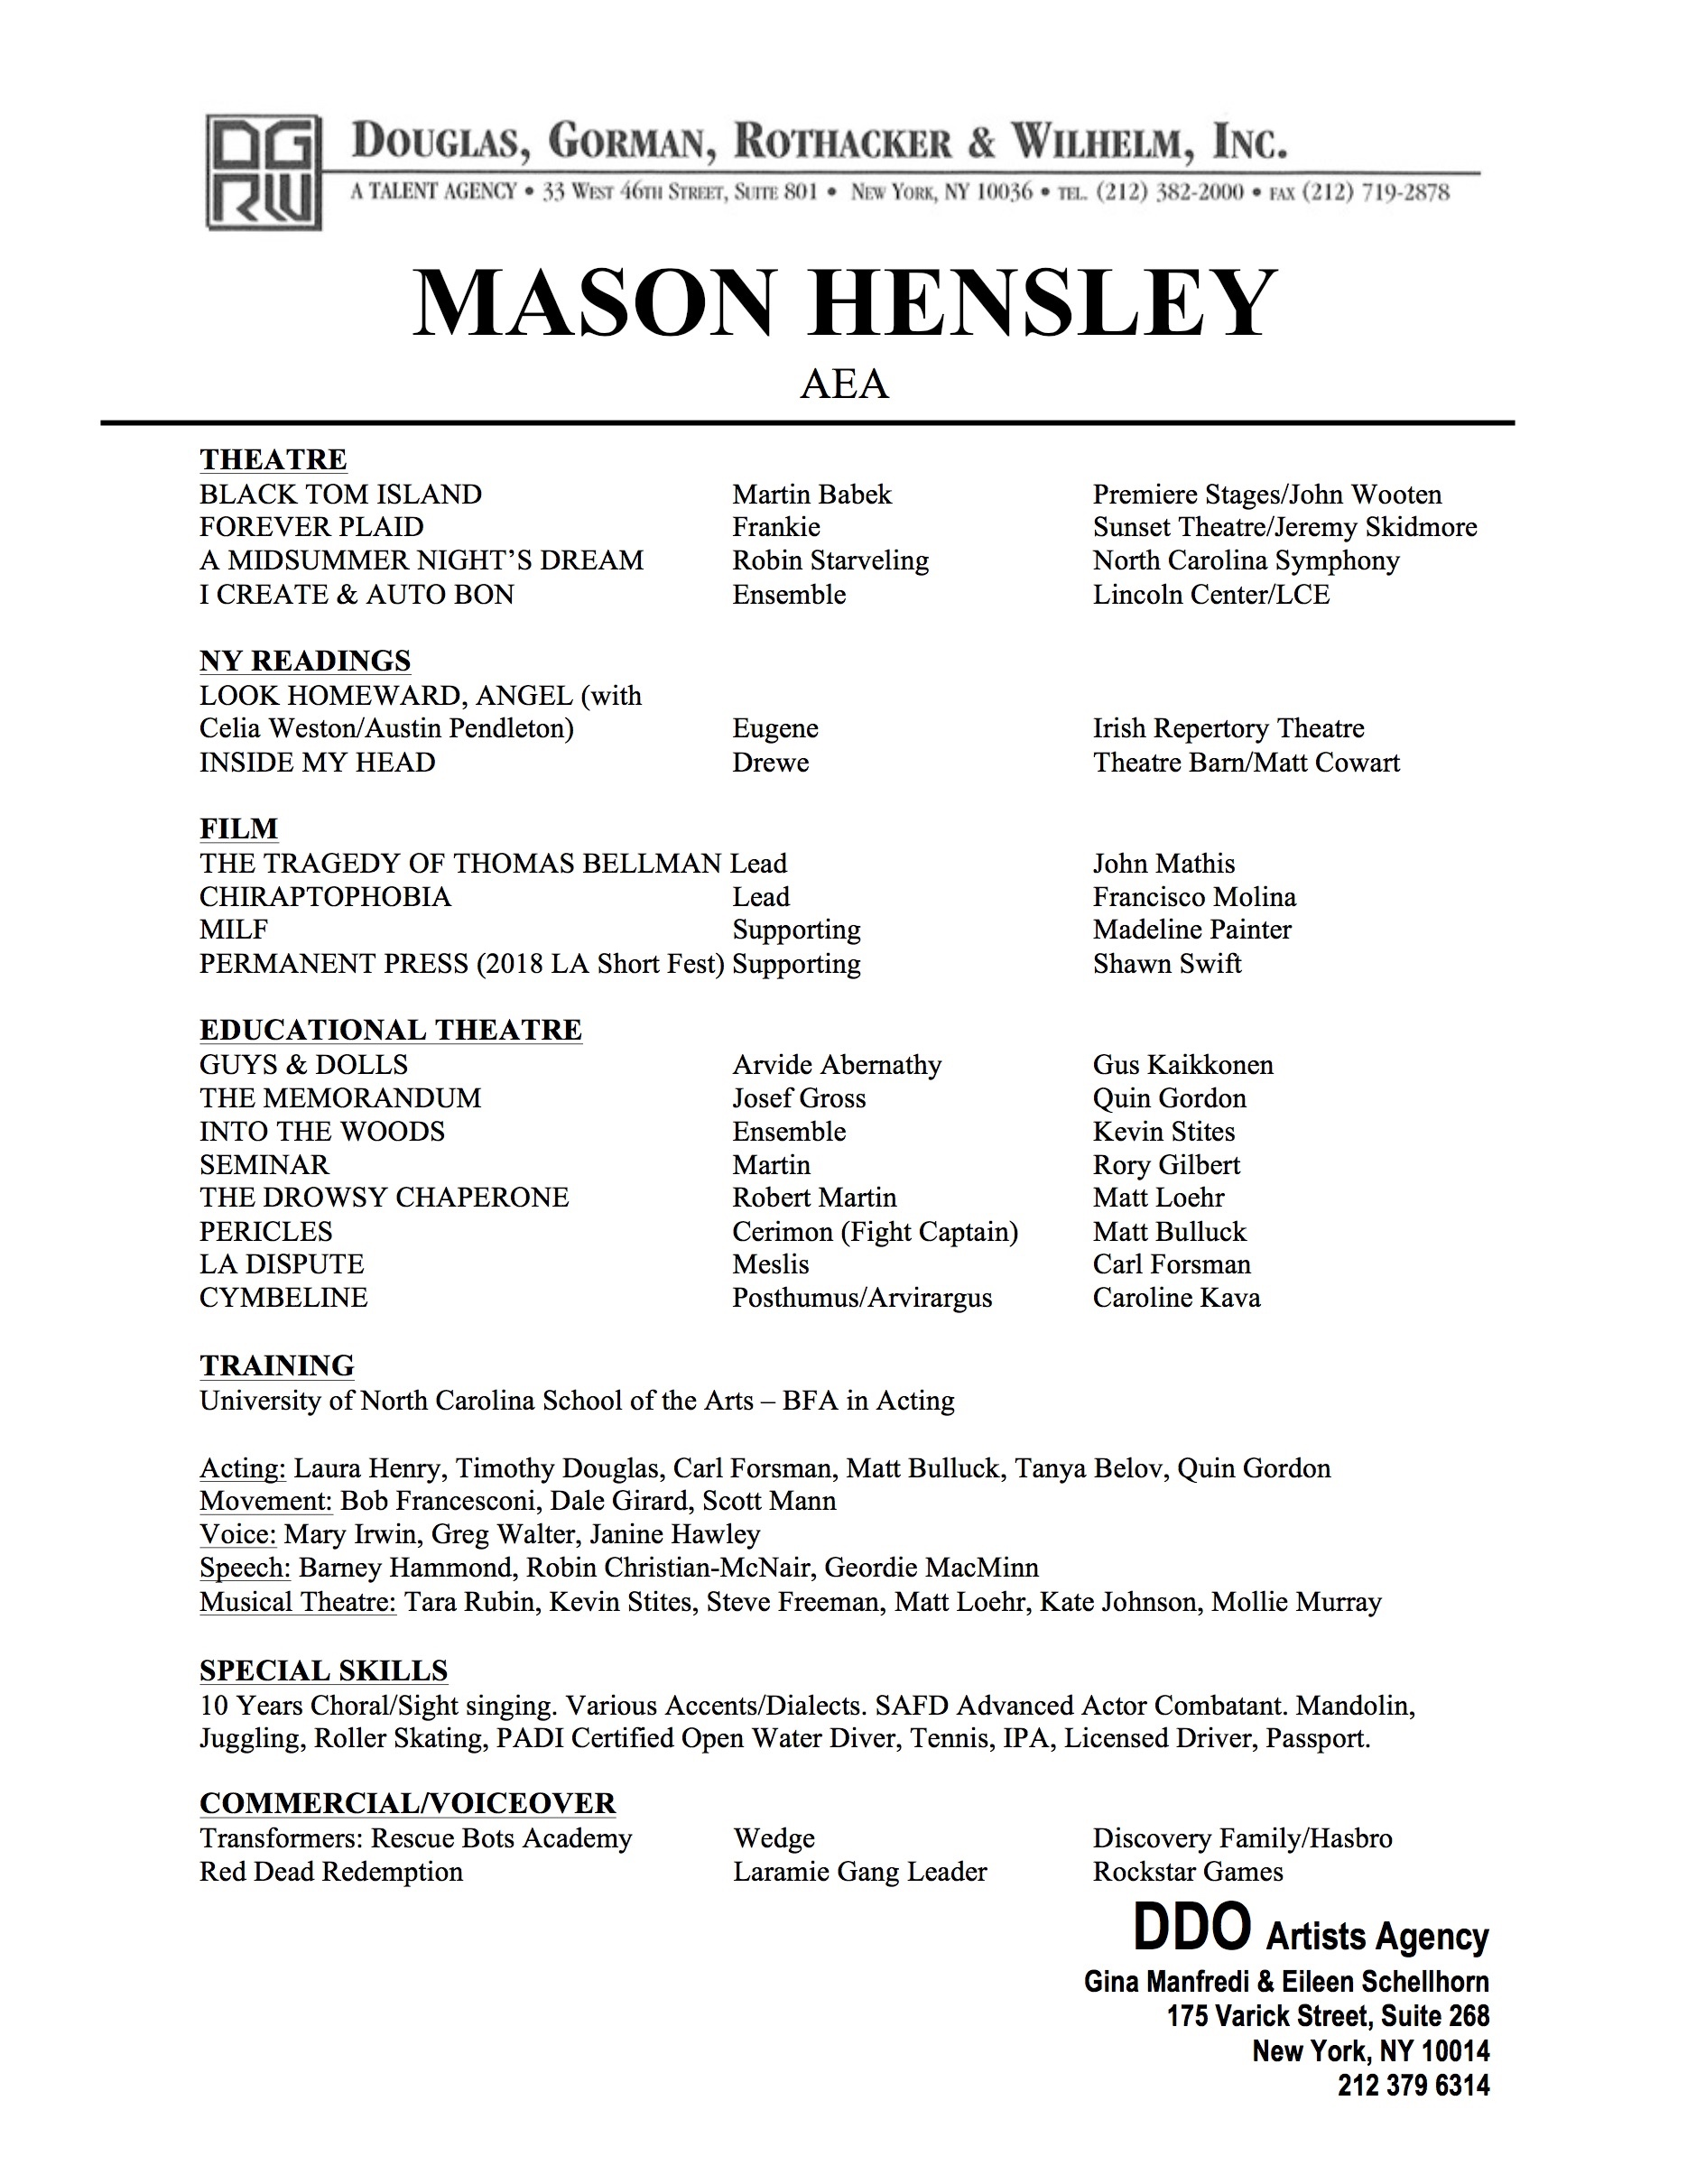 Mason Hensley Resume-1-2.jpg